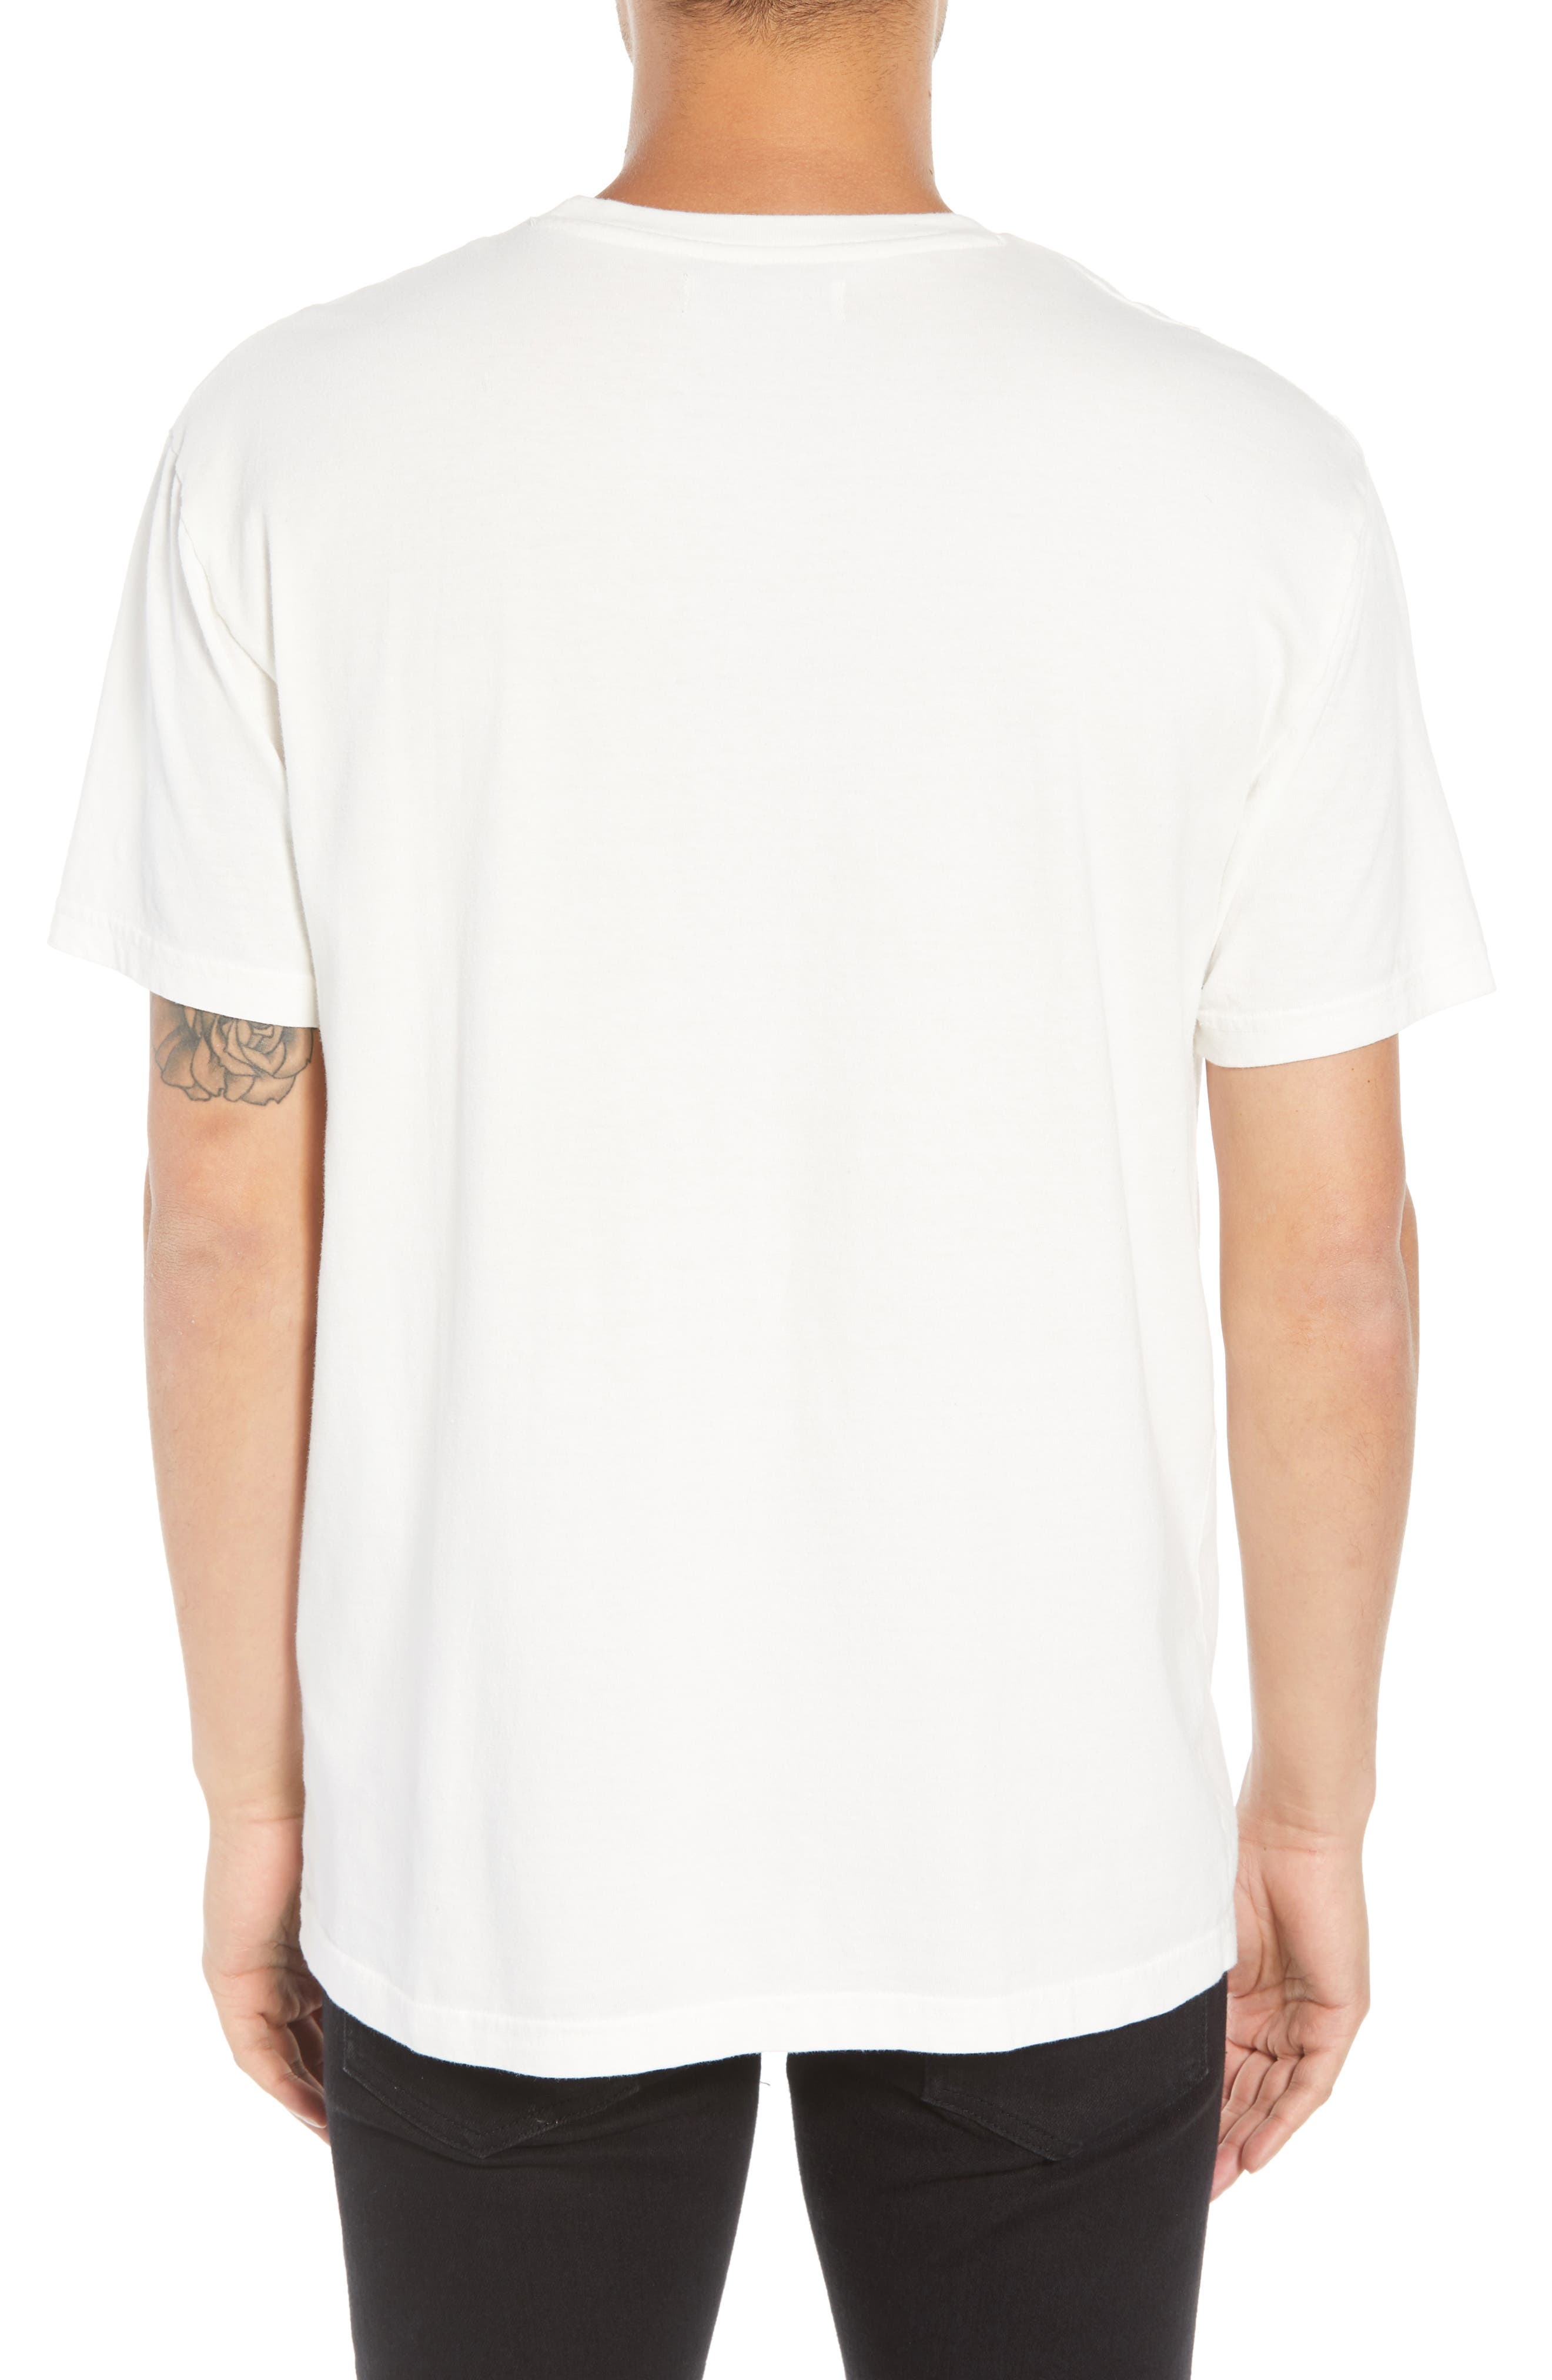 Trust No One Graphic T-Shirt,                             Alternate thumbnail 2, color,                             WHITE